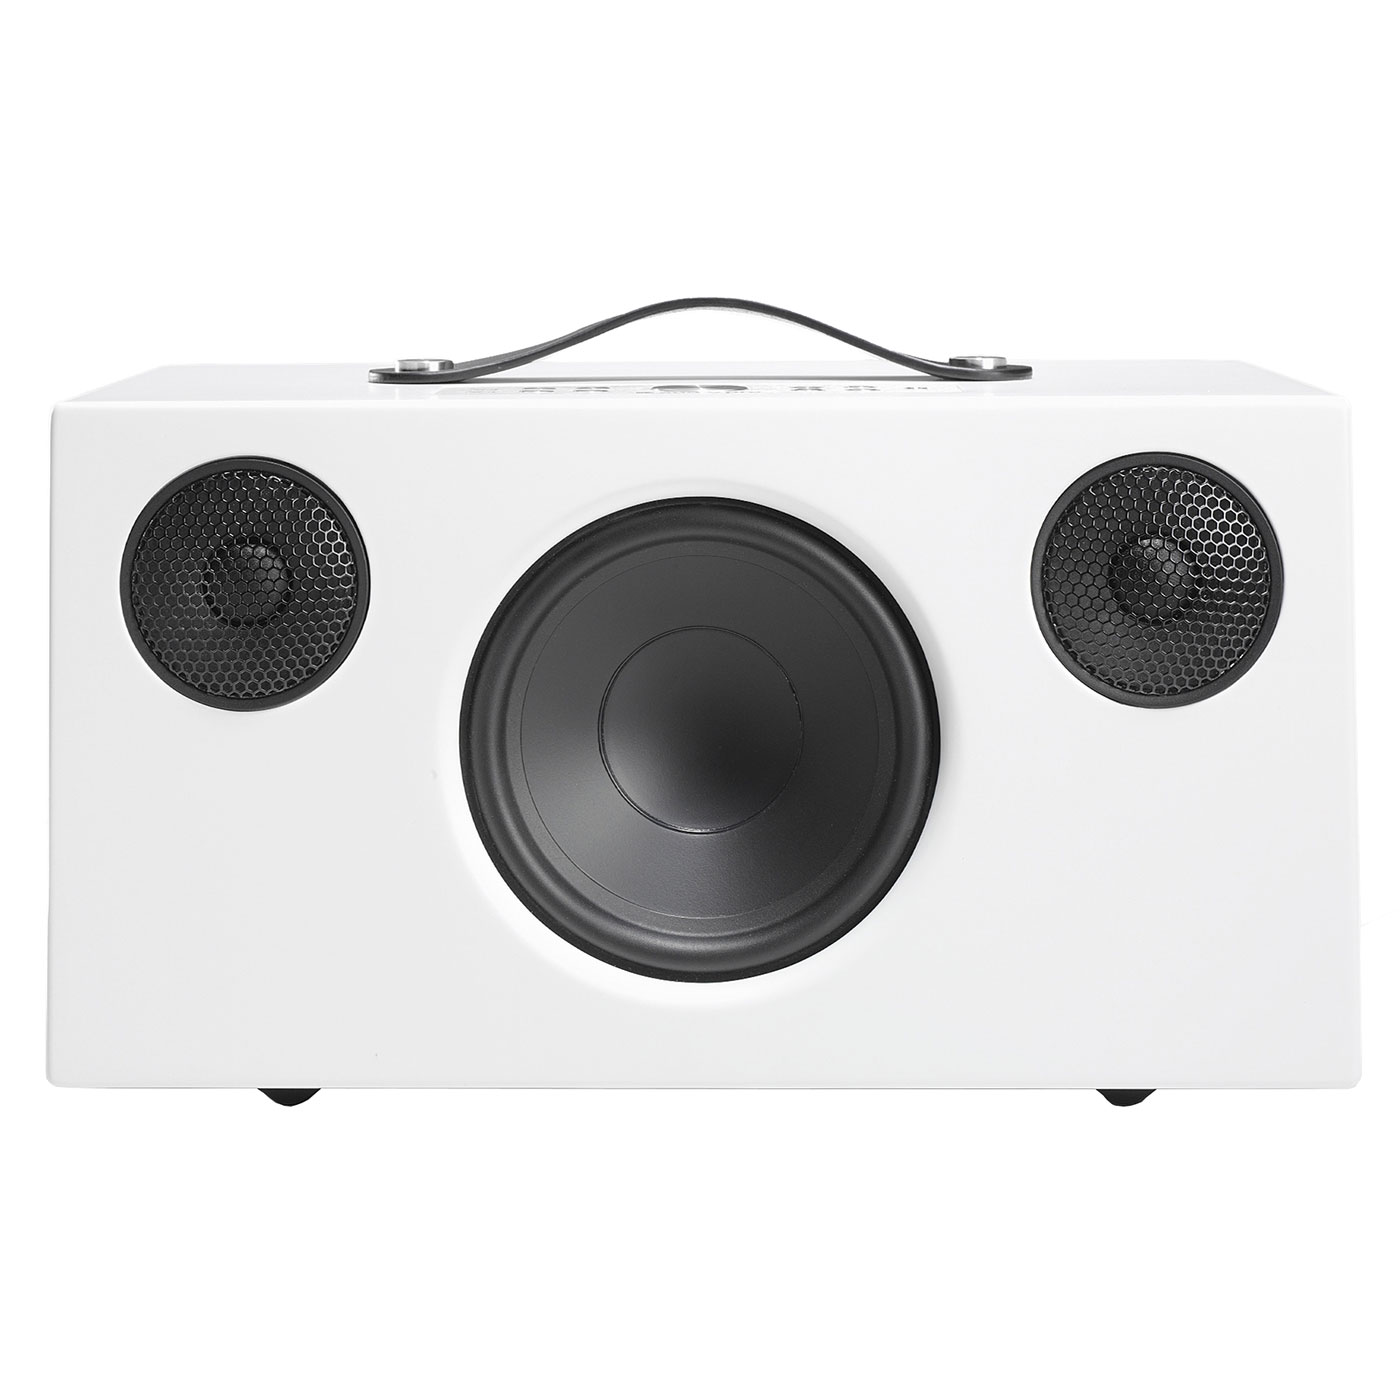 Réseau & Streaming audio Audio Pro Addon C10 Blanc Enceinte sans fil multiroom avec Wi-Fi, Bluetooth, AirPlay, Spotify Connect et USB